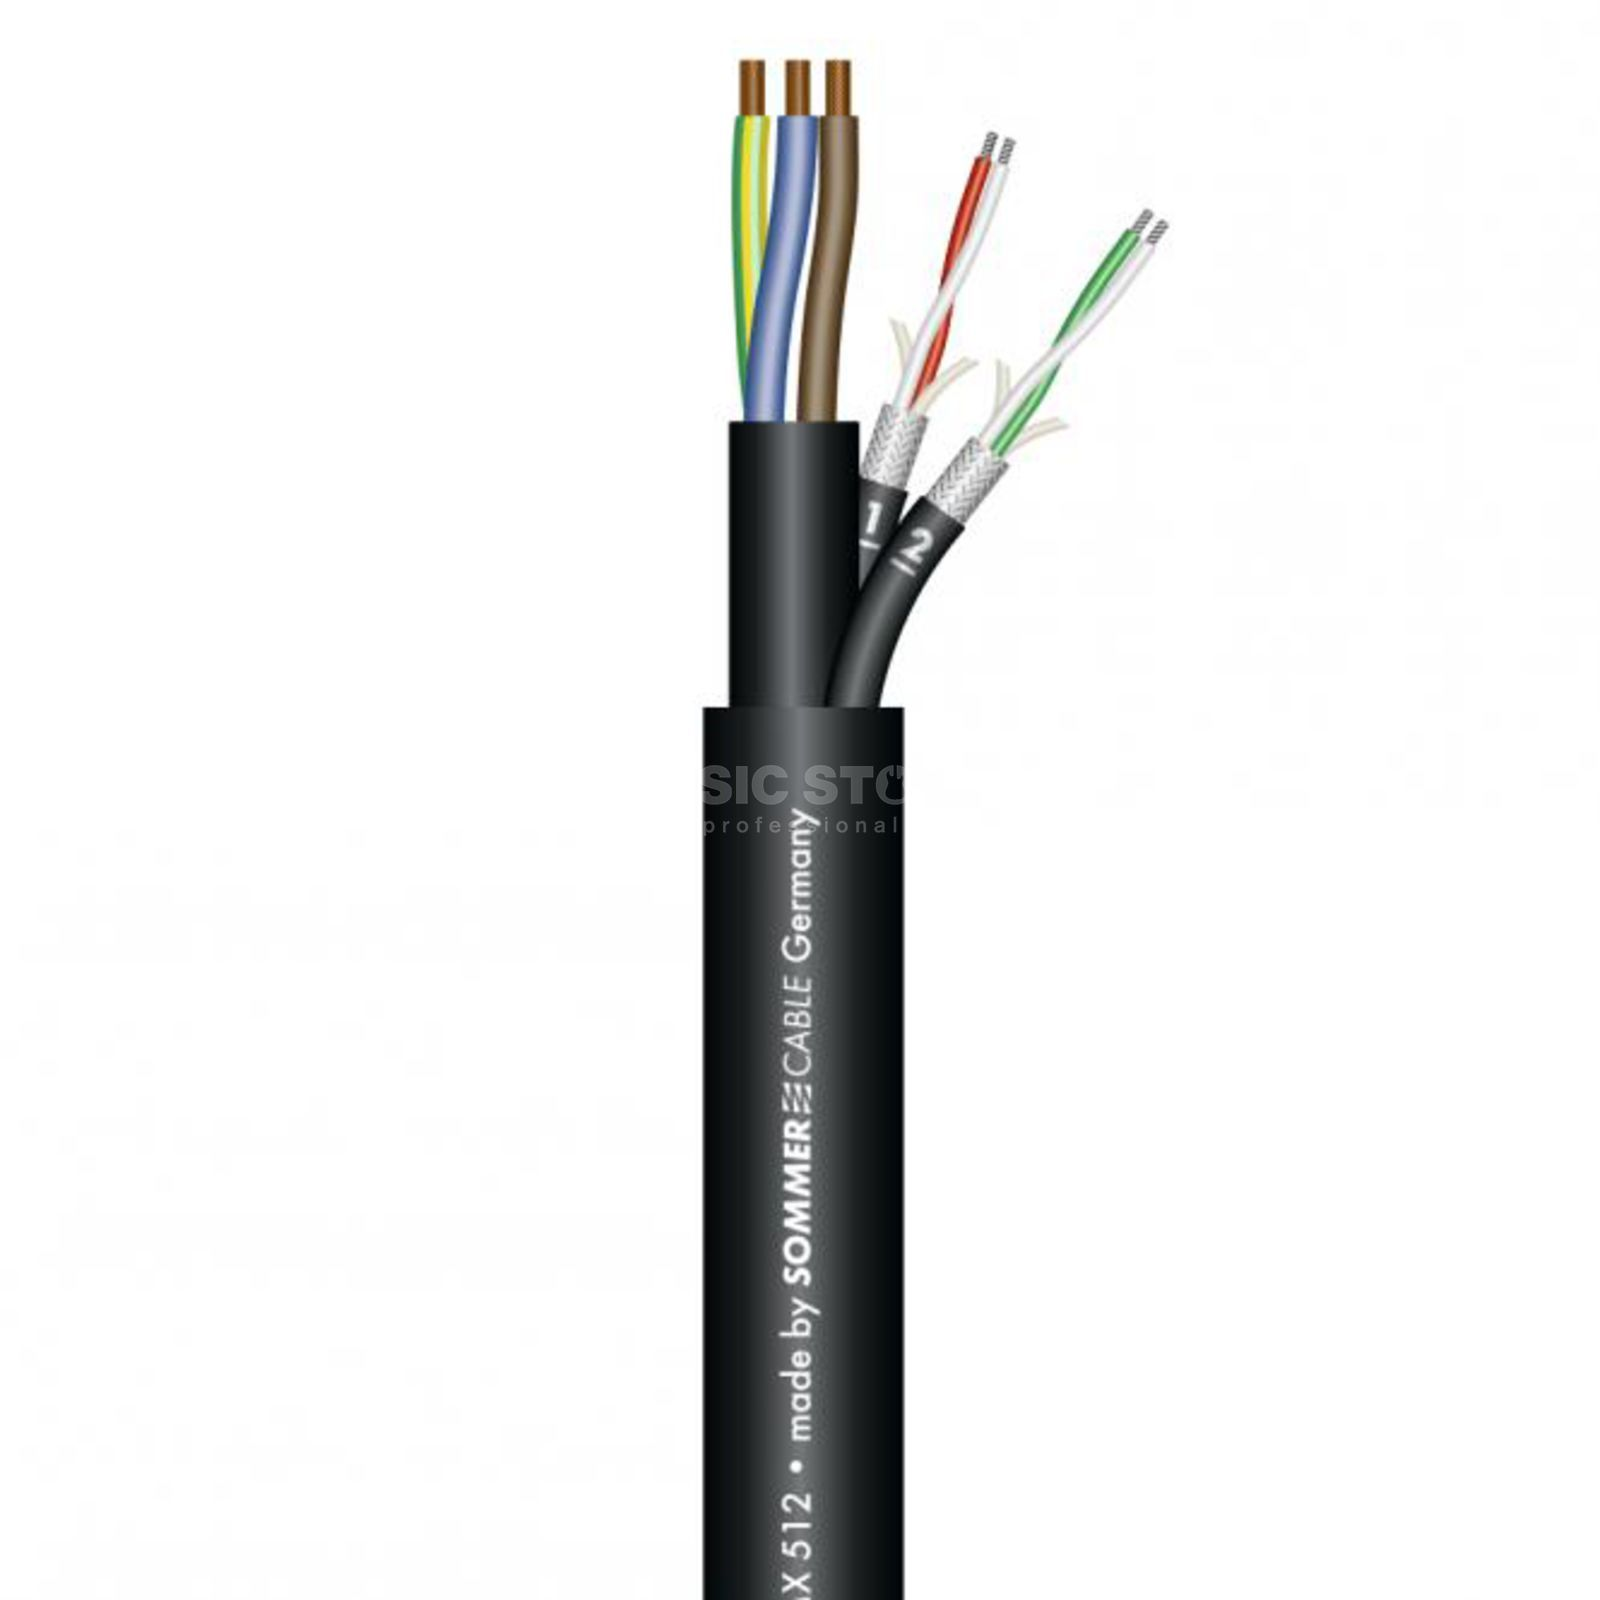 Sommer Cable MONOLITH 2 DMX- / StromCable 50m, 3x2.5mm²/2x0.25mm² Produktbillede